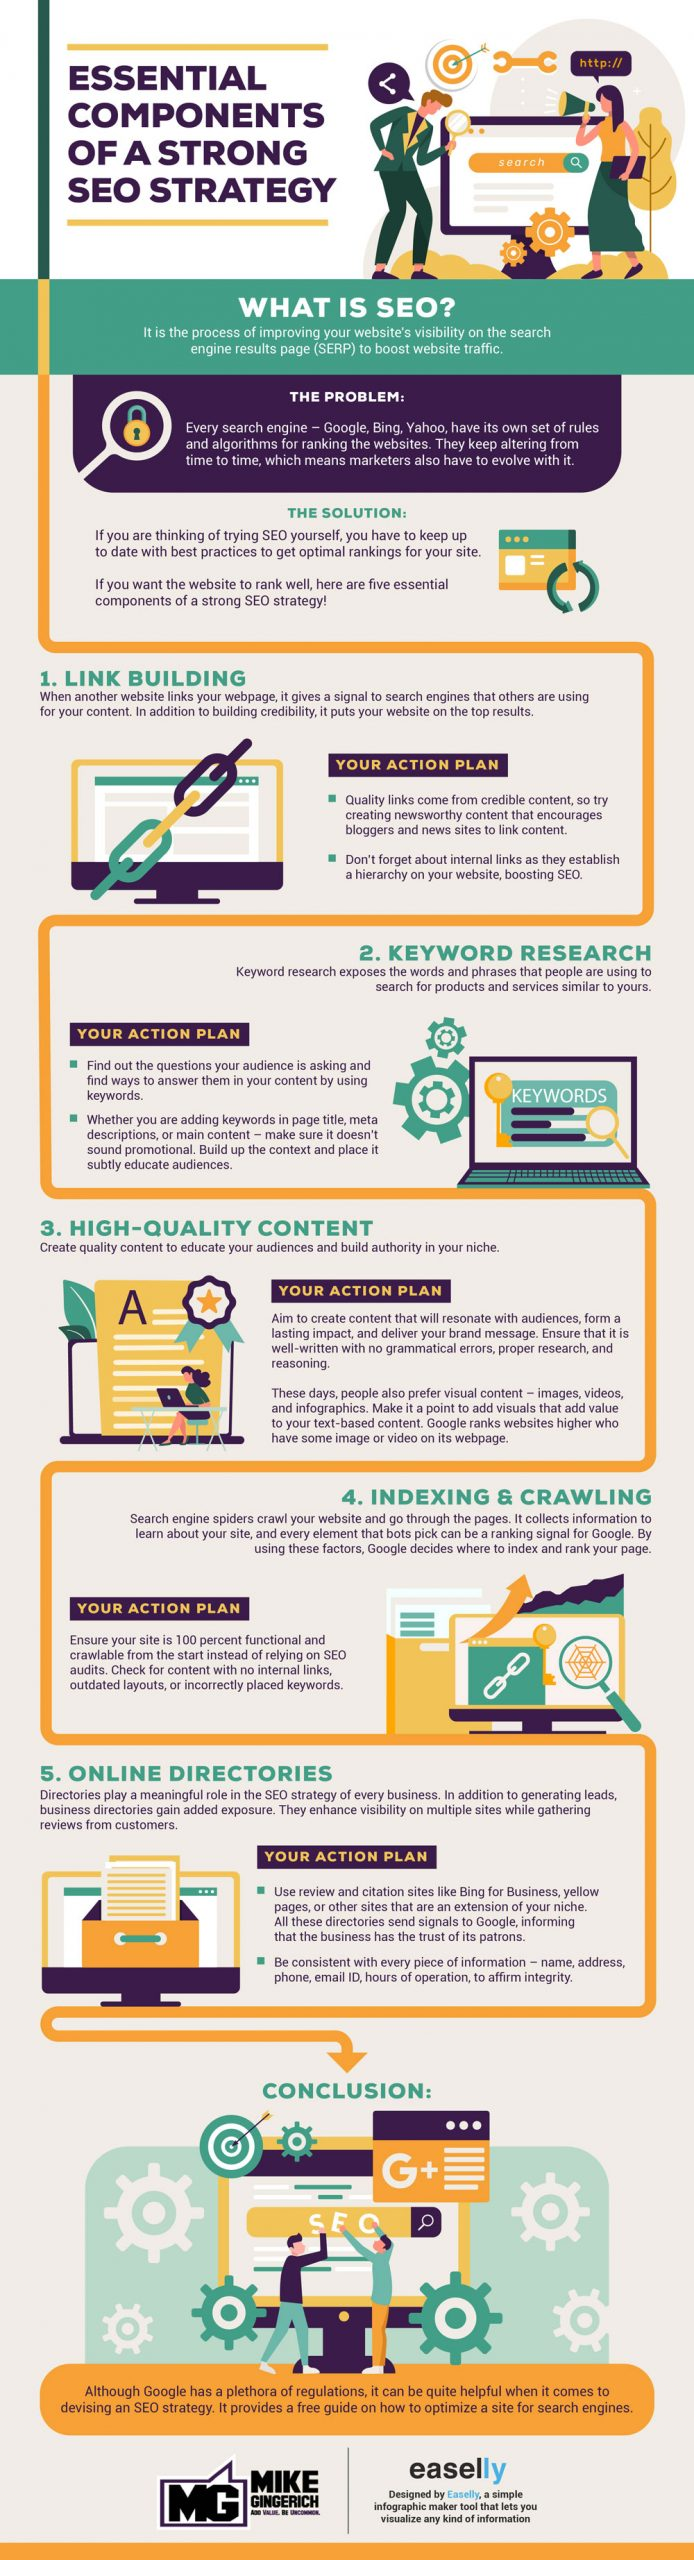 An infographic on the essential components of a strong SEO strategy